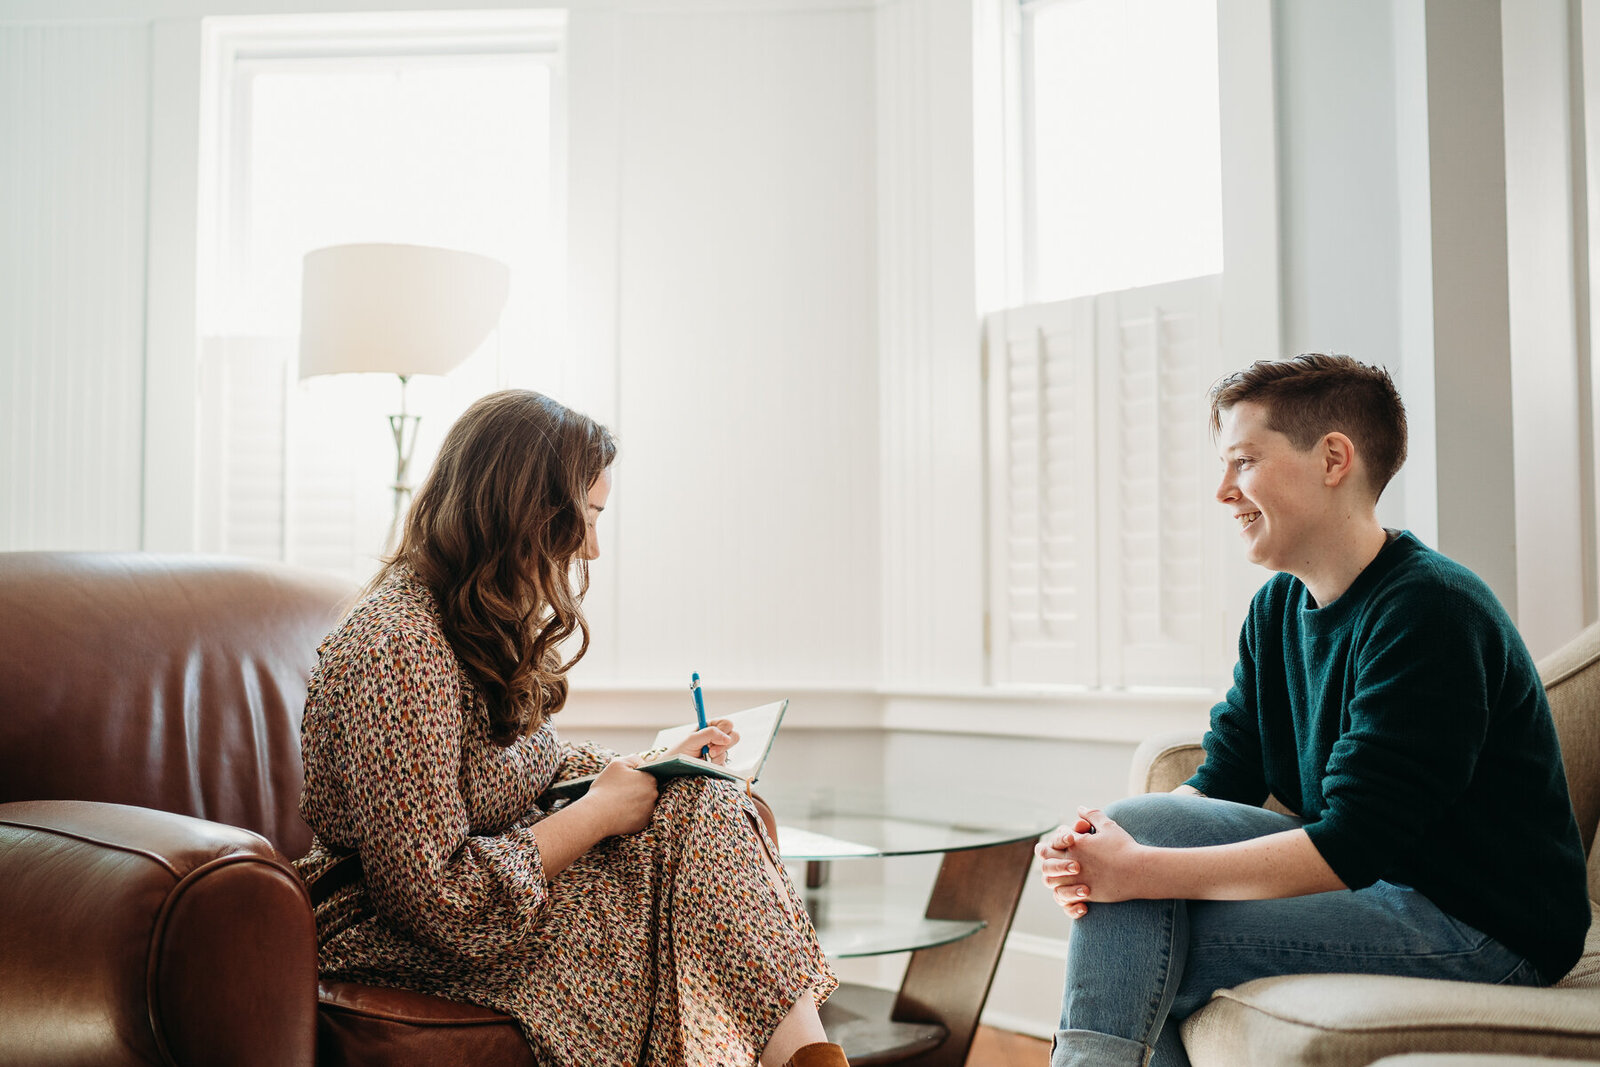 therapist chats with client in an office space during marketing photoshoot